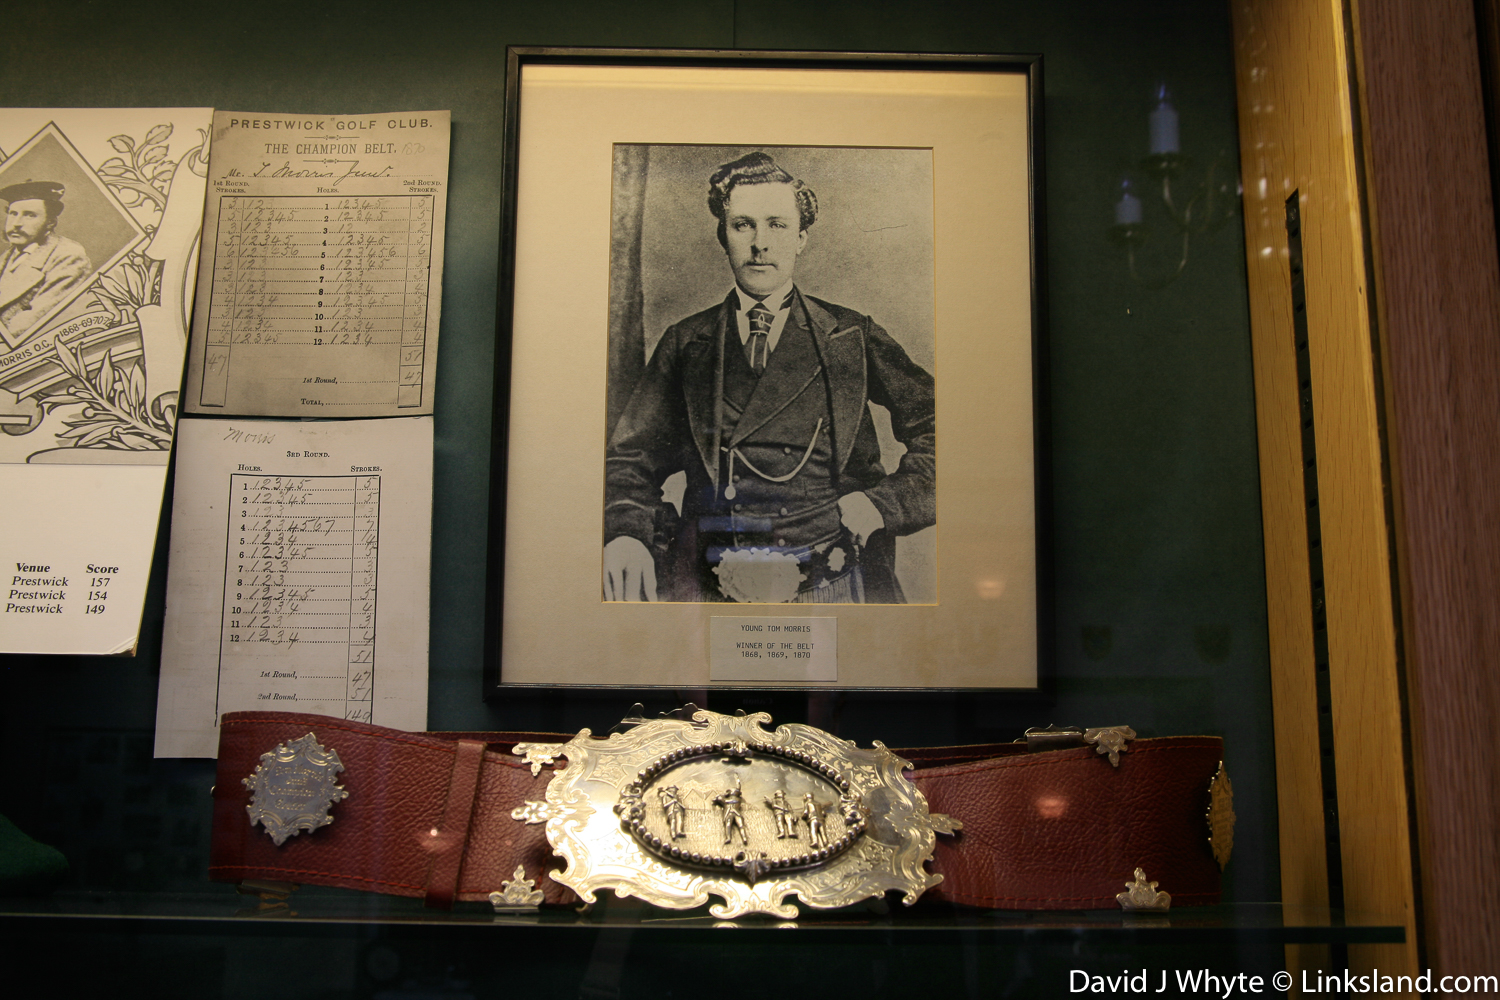 Young Tom Morris won the Open Championship four times in a row at Prestwick by the age of 21. No one has repeated this singular feat since!